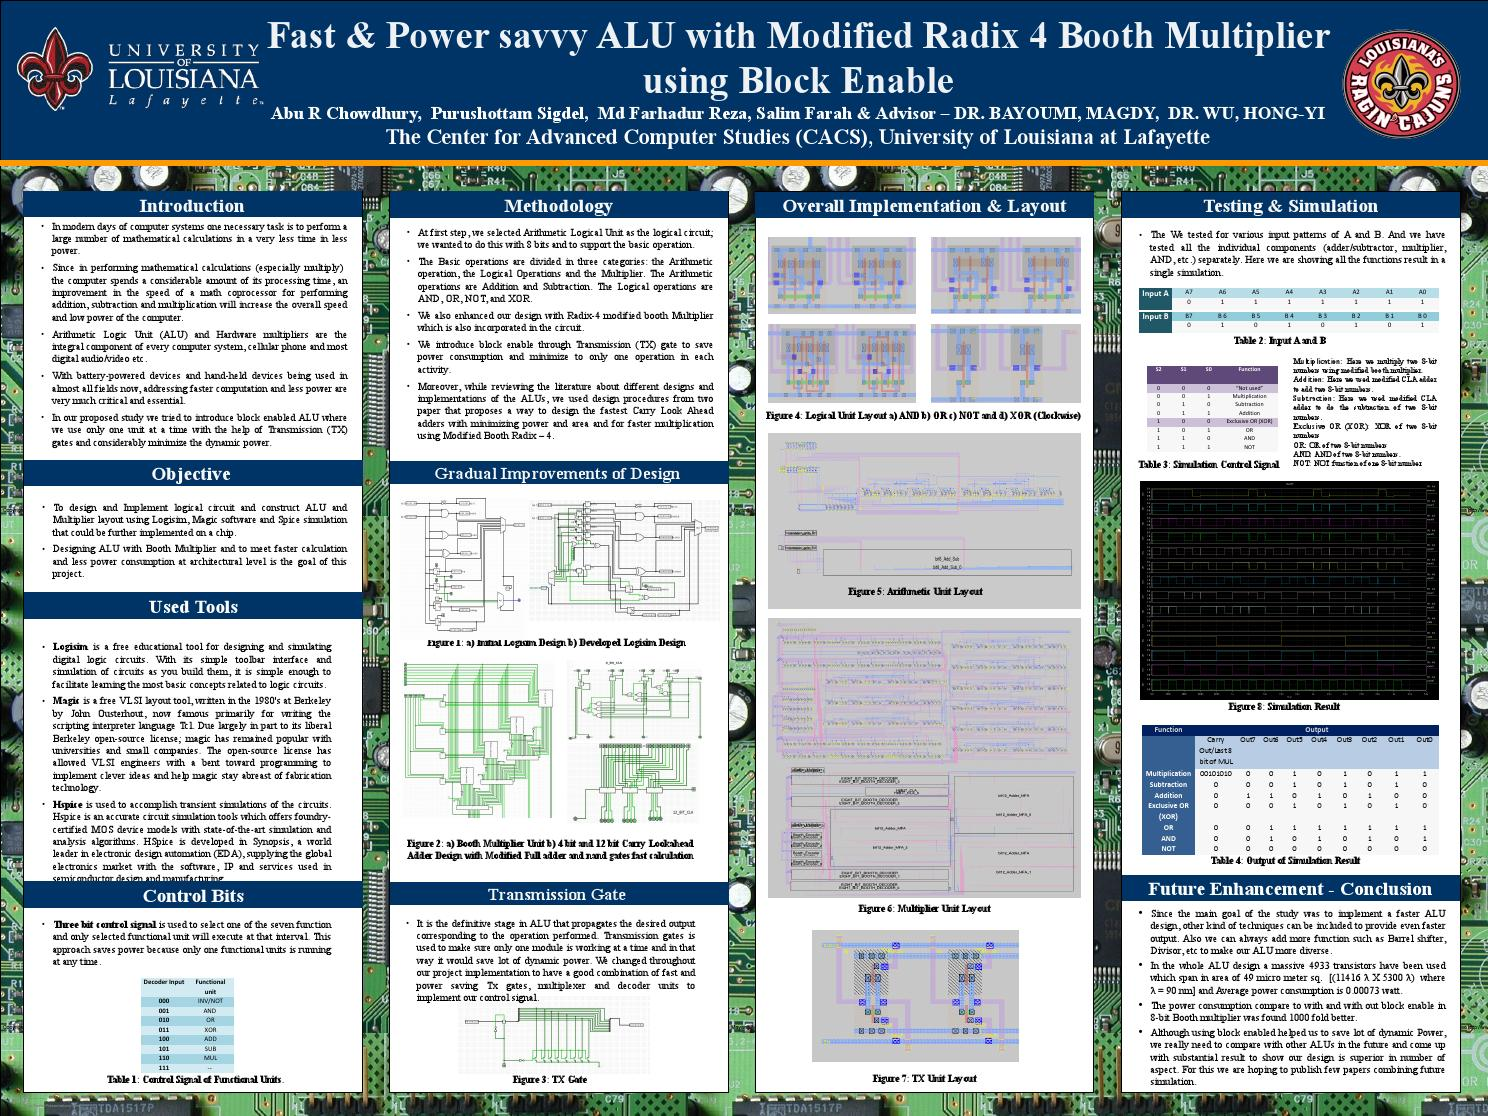 Fast Power Savvy Alu With Modified Radix 4 Booth Multiplier Using 8 Bit Circuit Diagram Block Enable Alphaposter By John Rahat Issuu